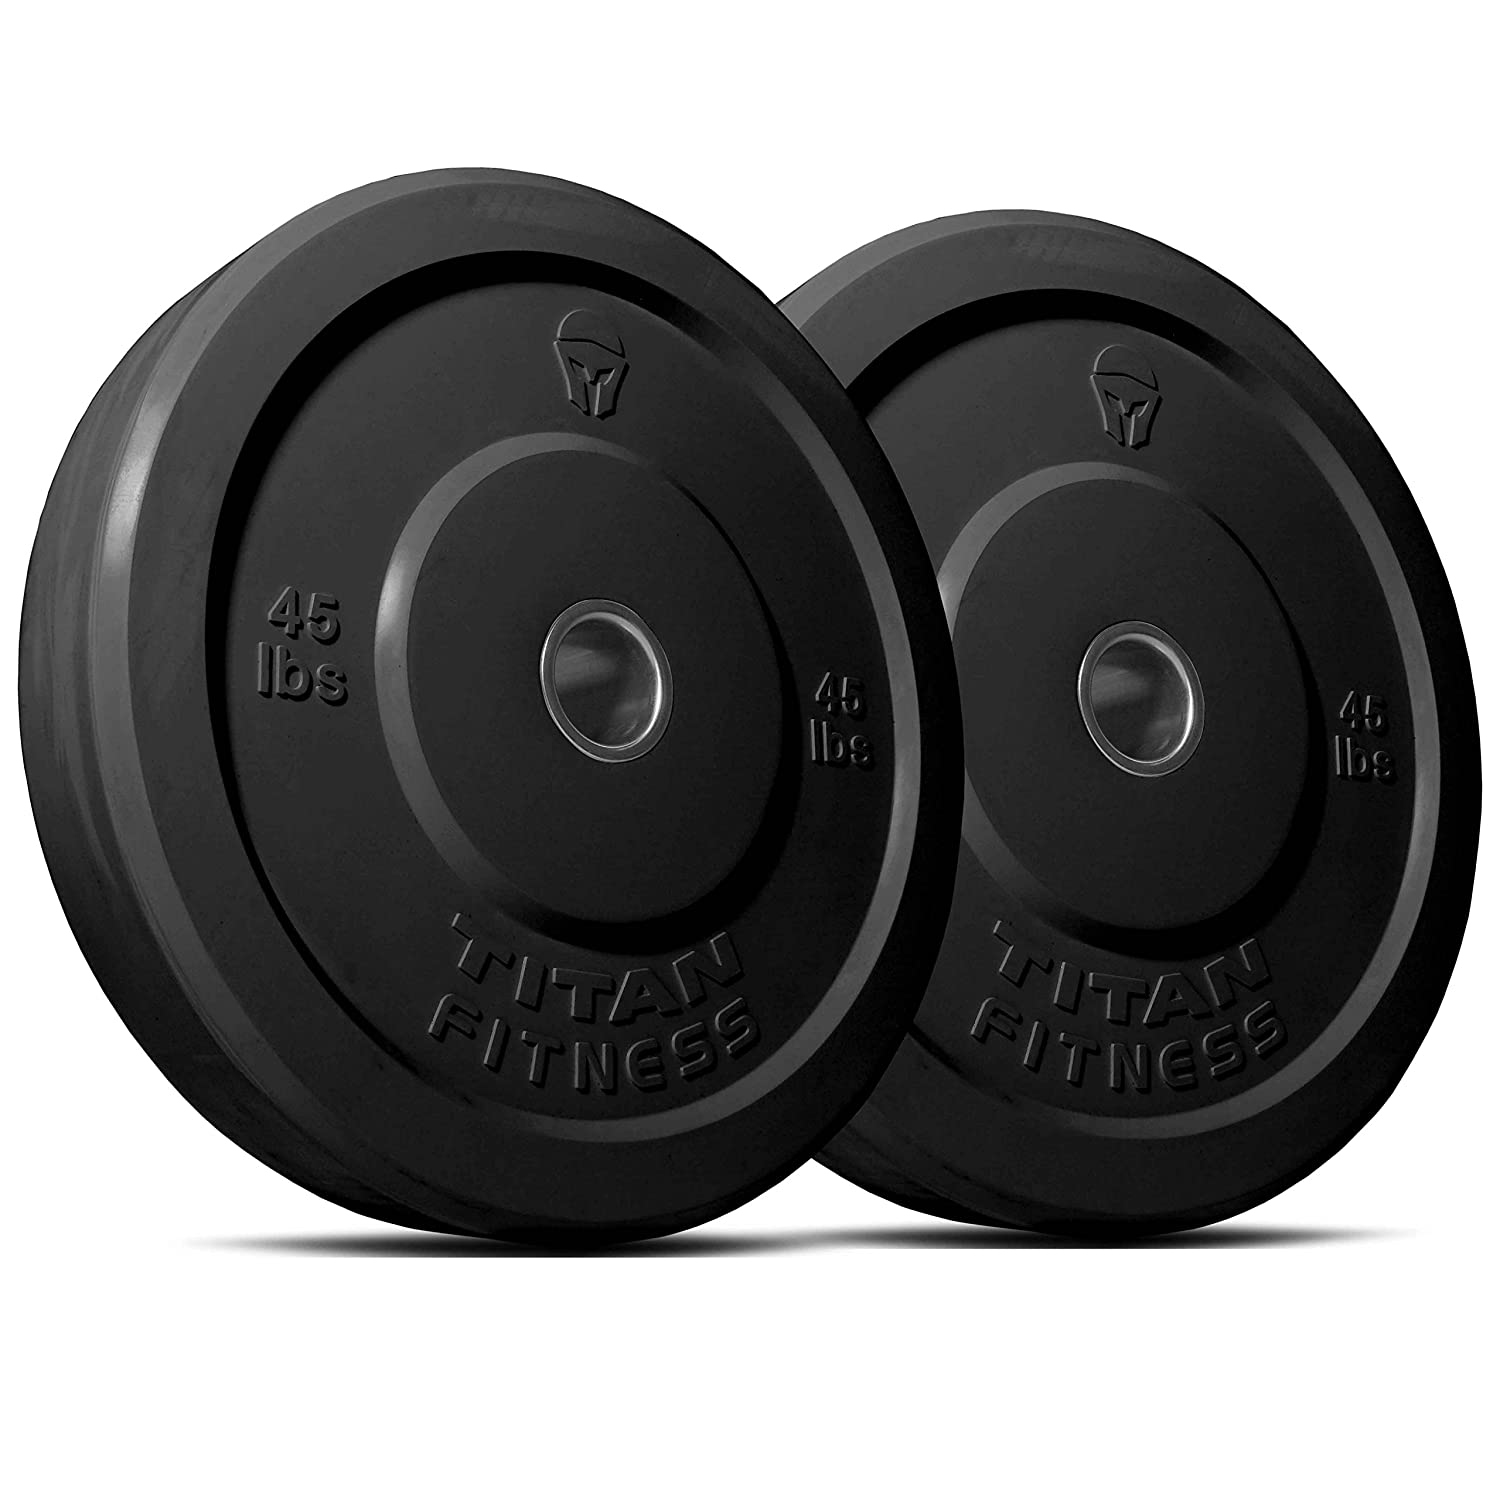 Titan Olympic Bumper Plates, Weights for Strength Training, 5 Pairs, 260 lbs